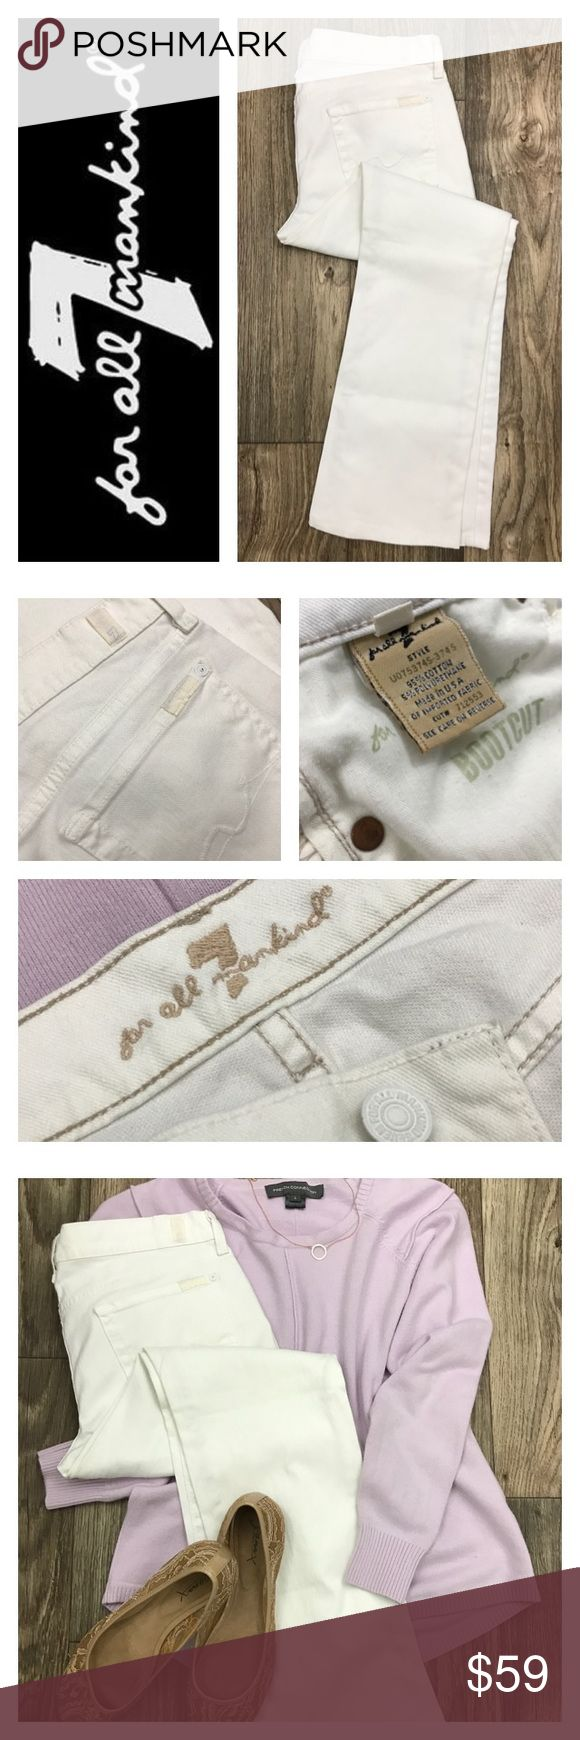 7 FOR ALL MANKIND White Bootcut Jeans Sz 30 Lightly loved.  Waist: 16 Inseam: 29 Outseam: 37 Leg Opening: 8.5 Front Rise: 8 Back Rise: 13 Hips: 19.5  LOVE THIS LOOK!?  Get the top here!  https://poshmark.com/listing/FRENCH-CONNECTION-Lavender-Sweater-Sz-Lrg-59bff964ea3f36a20d001aca  *Please note this listing is for the jeans ONLY* 7 For All Mankind Jeans Boot Cut